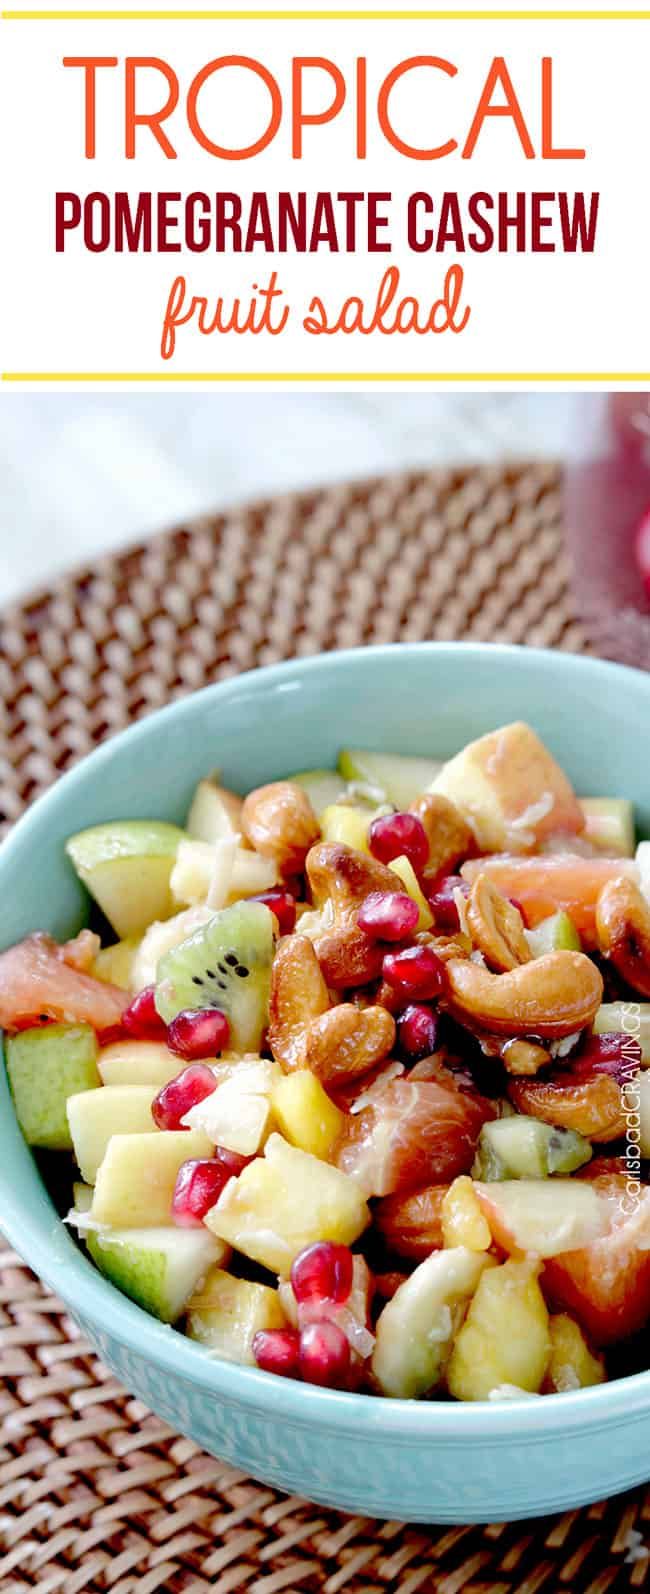 Tropical Pomegranate Cashew Fruit Salad | Carlsbad Cravings